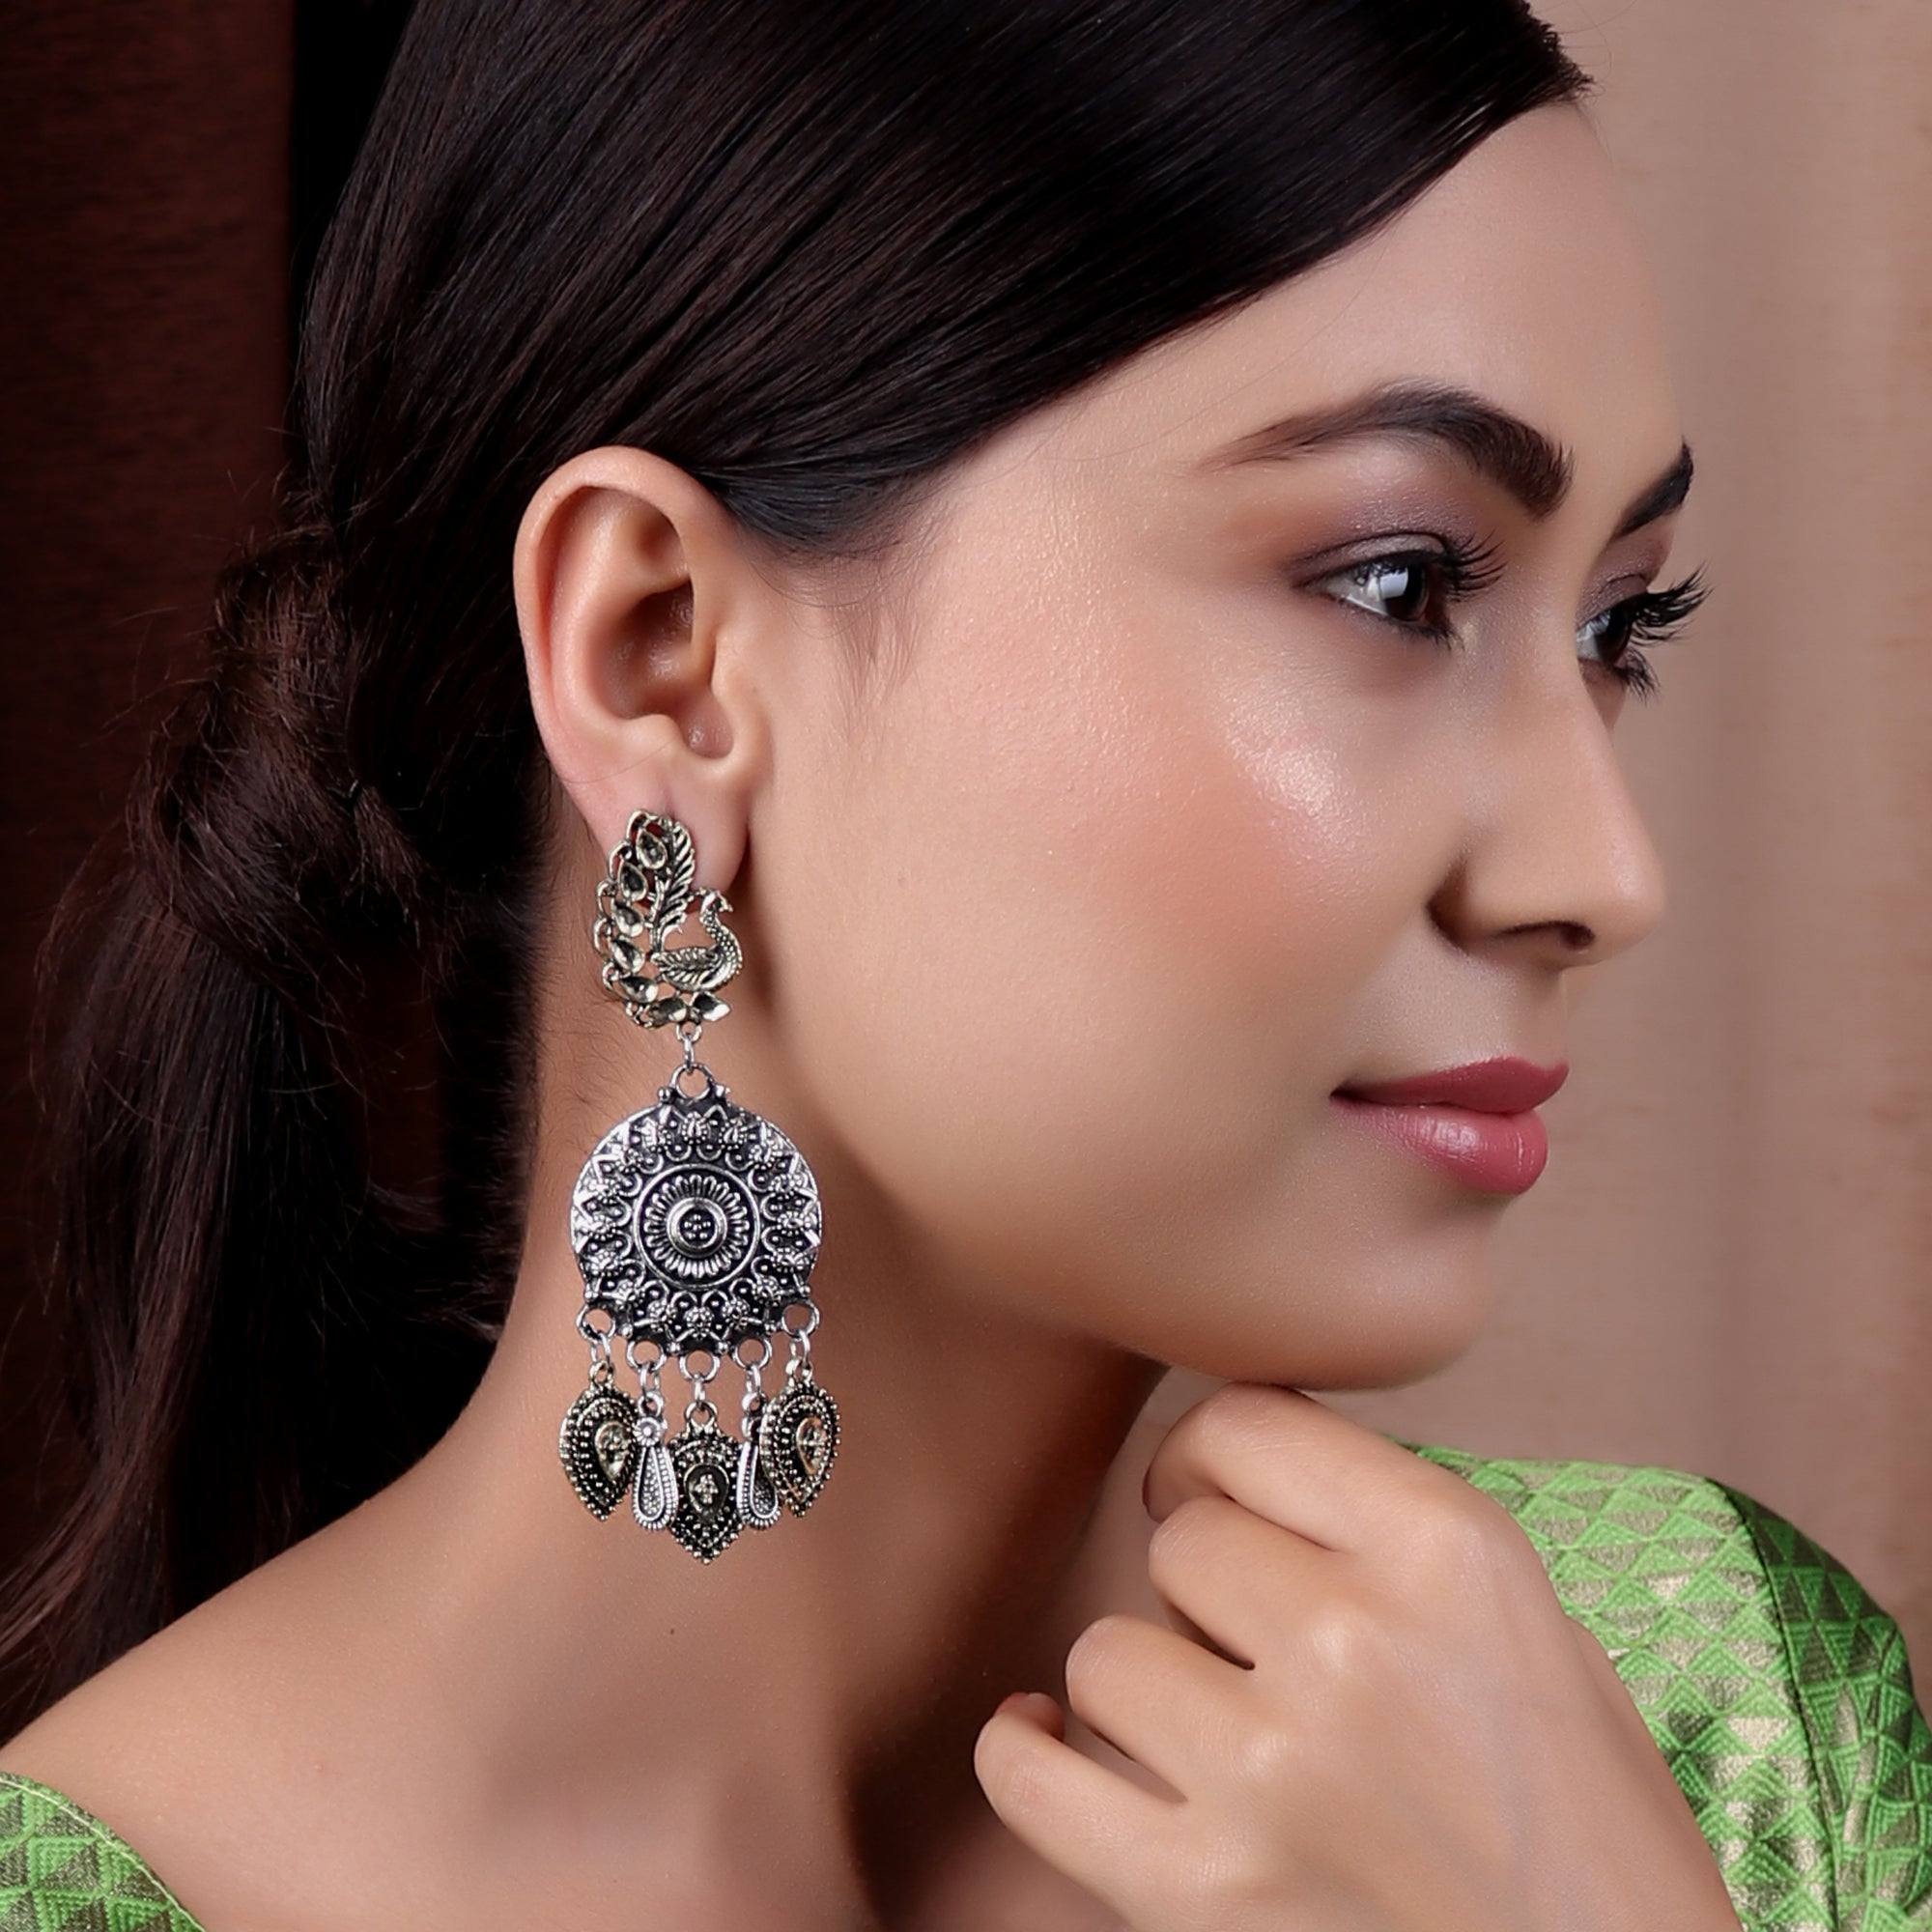 Earrings,The Royal Swan Earring in Dual Tone - Cippele Multi Store